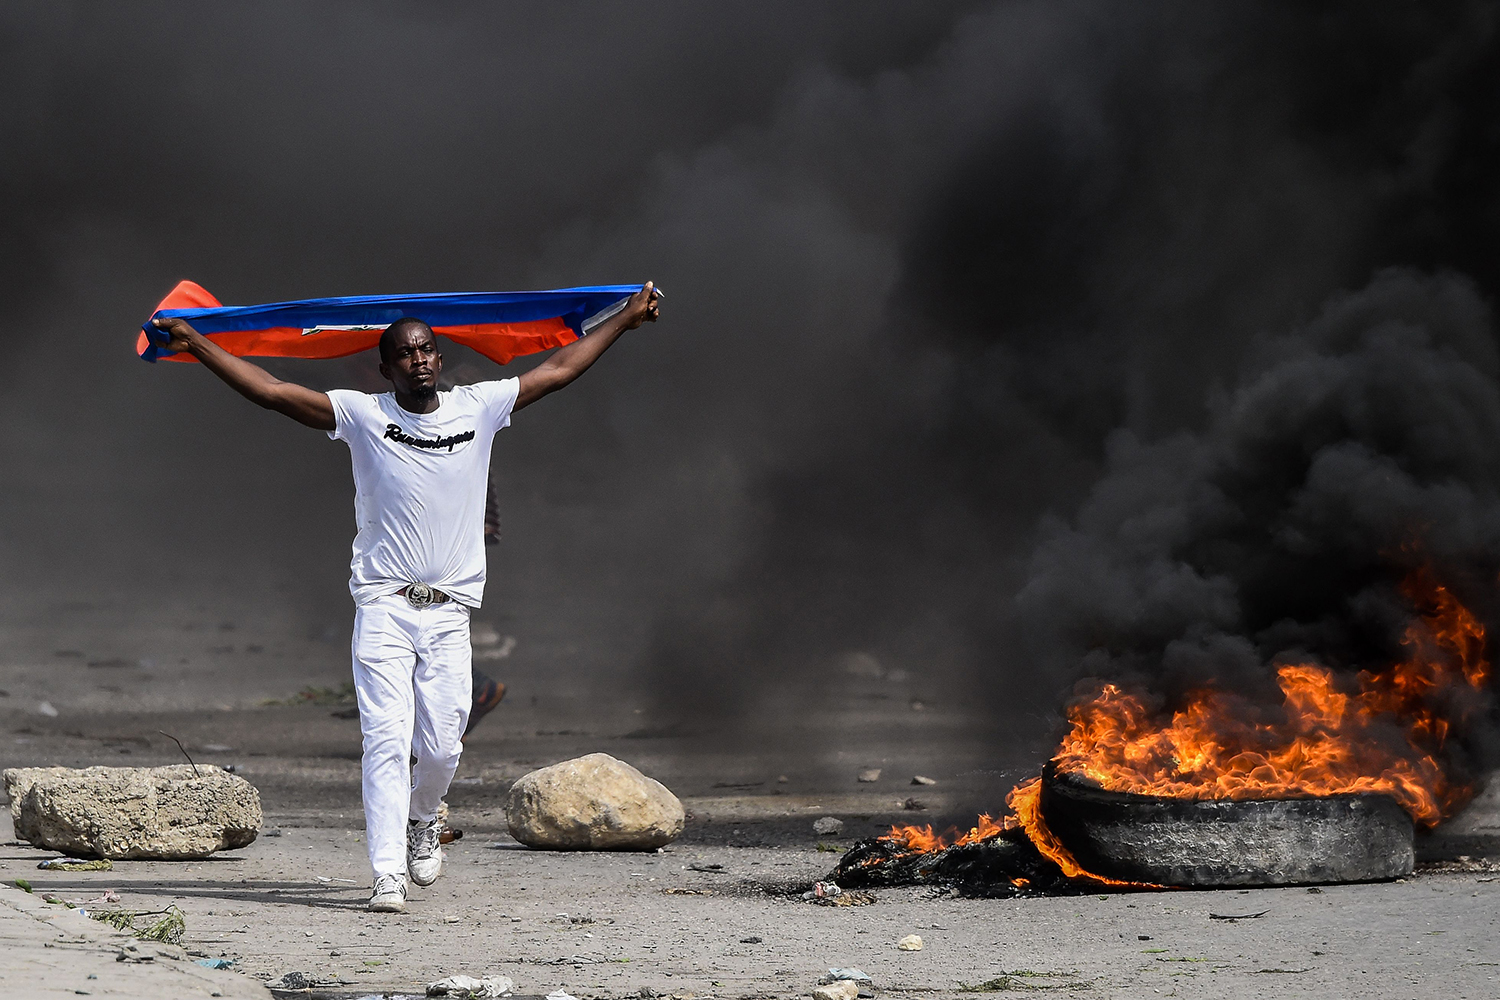 A demonstrator waves a Haitian flag during a protest against President Jovenel Moise outside the United Nation's main base in Port-au-Prince, Haiti, on Oct. 4. CHANDAN KHANNA/AFP via Getty Images